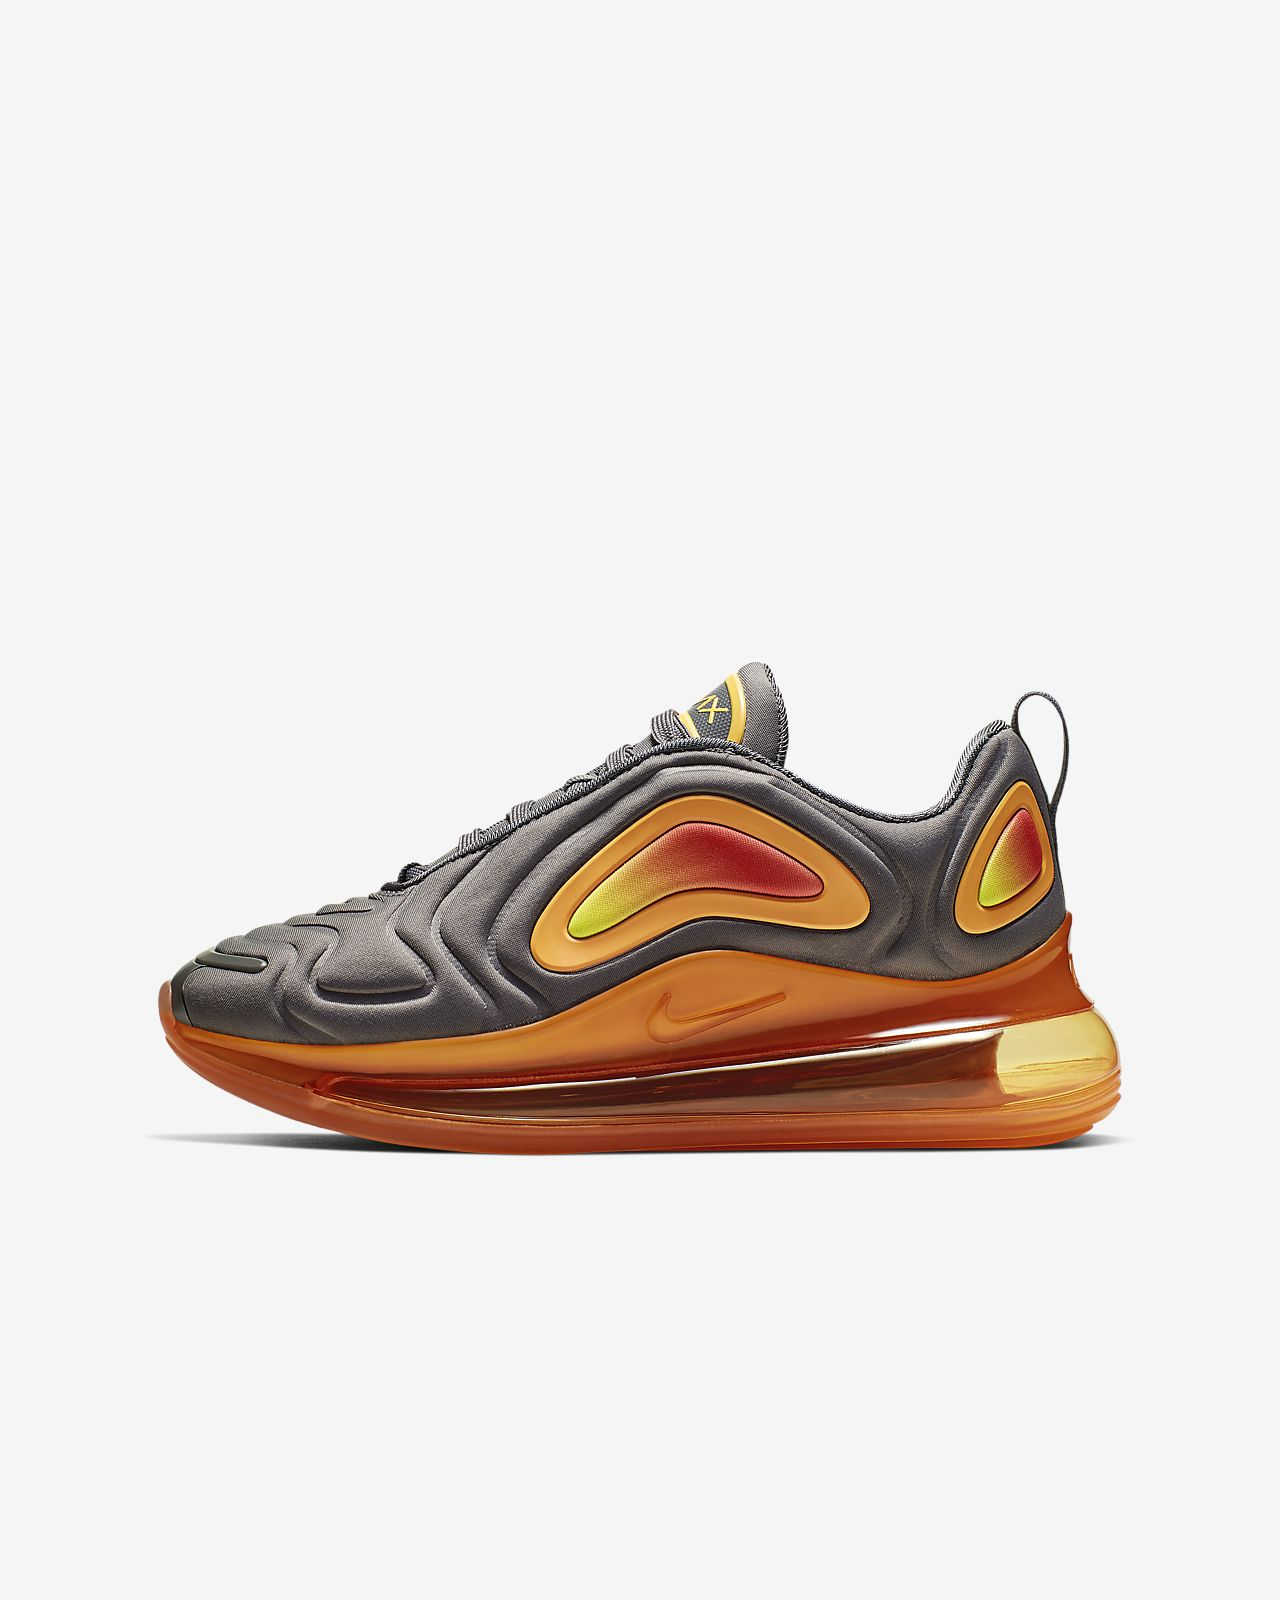 Sko Nike Air Max 720 Game Change för barn/ungdom